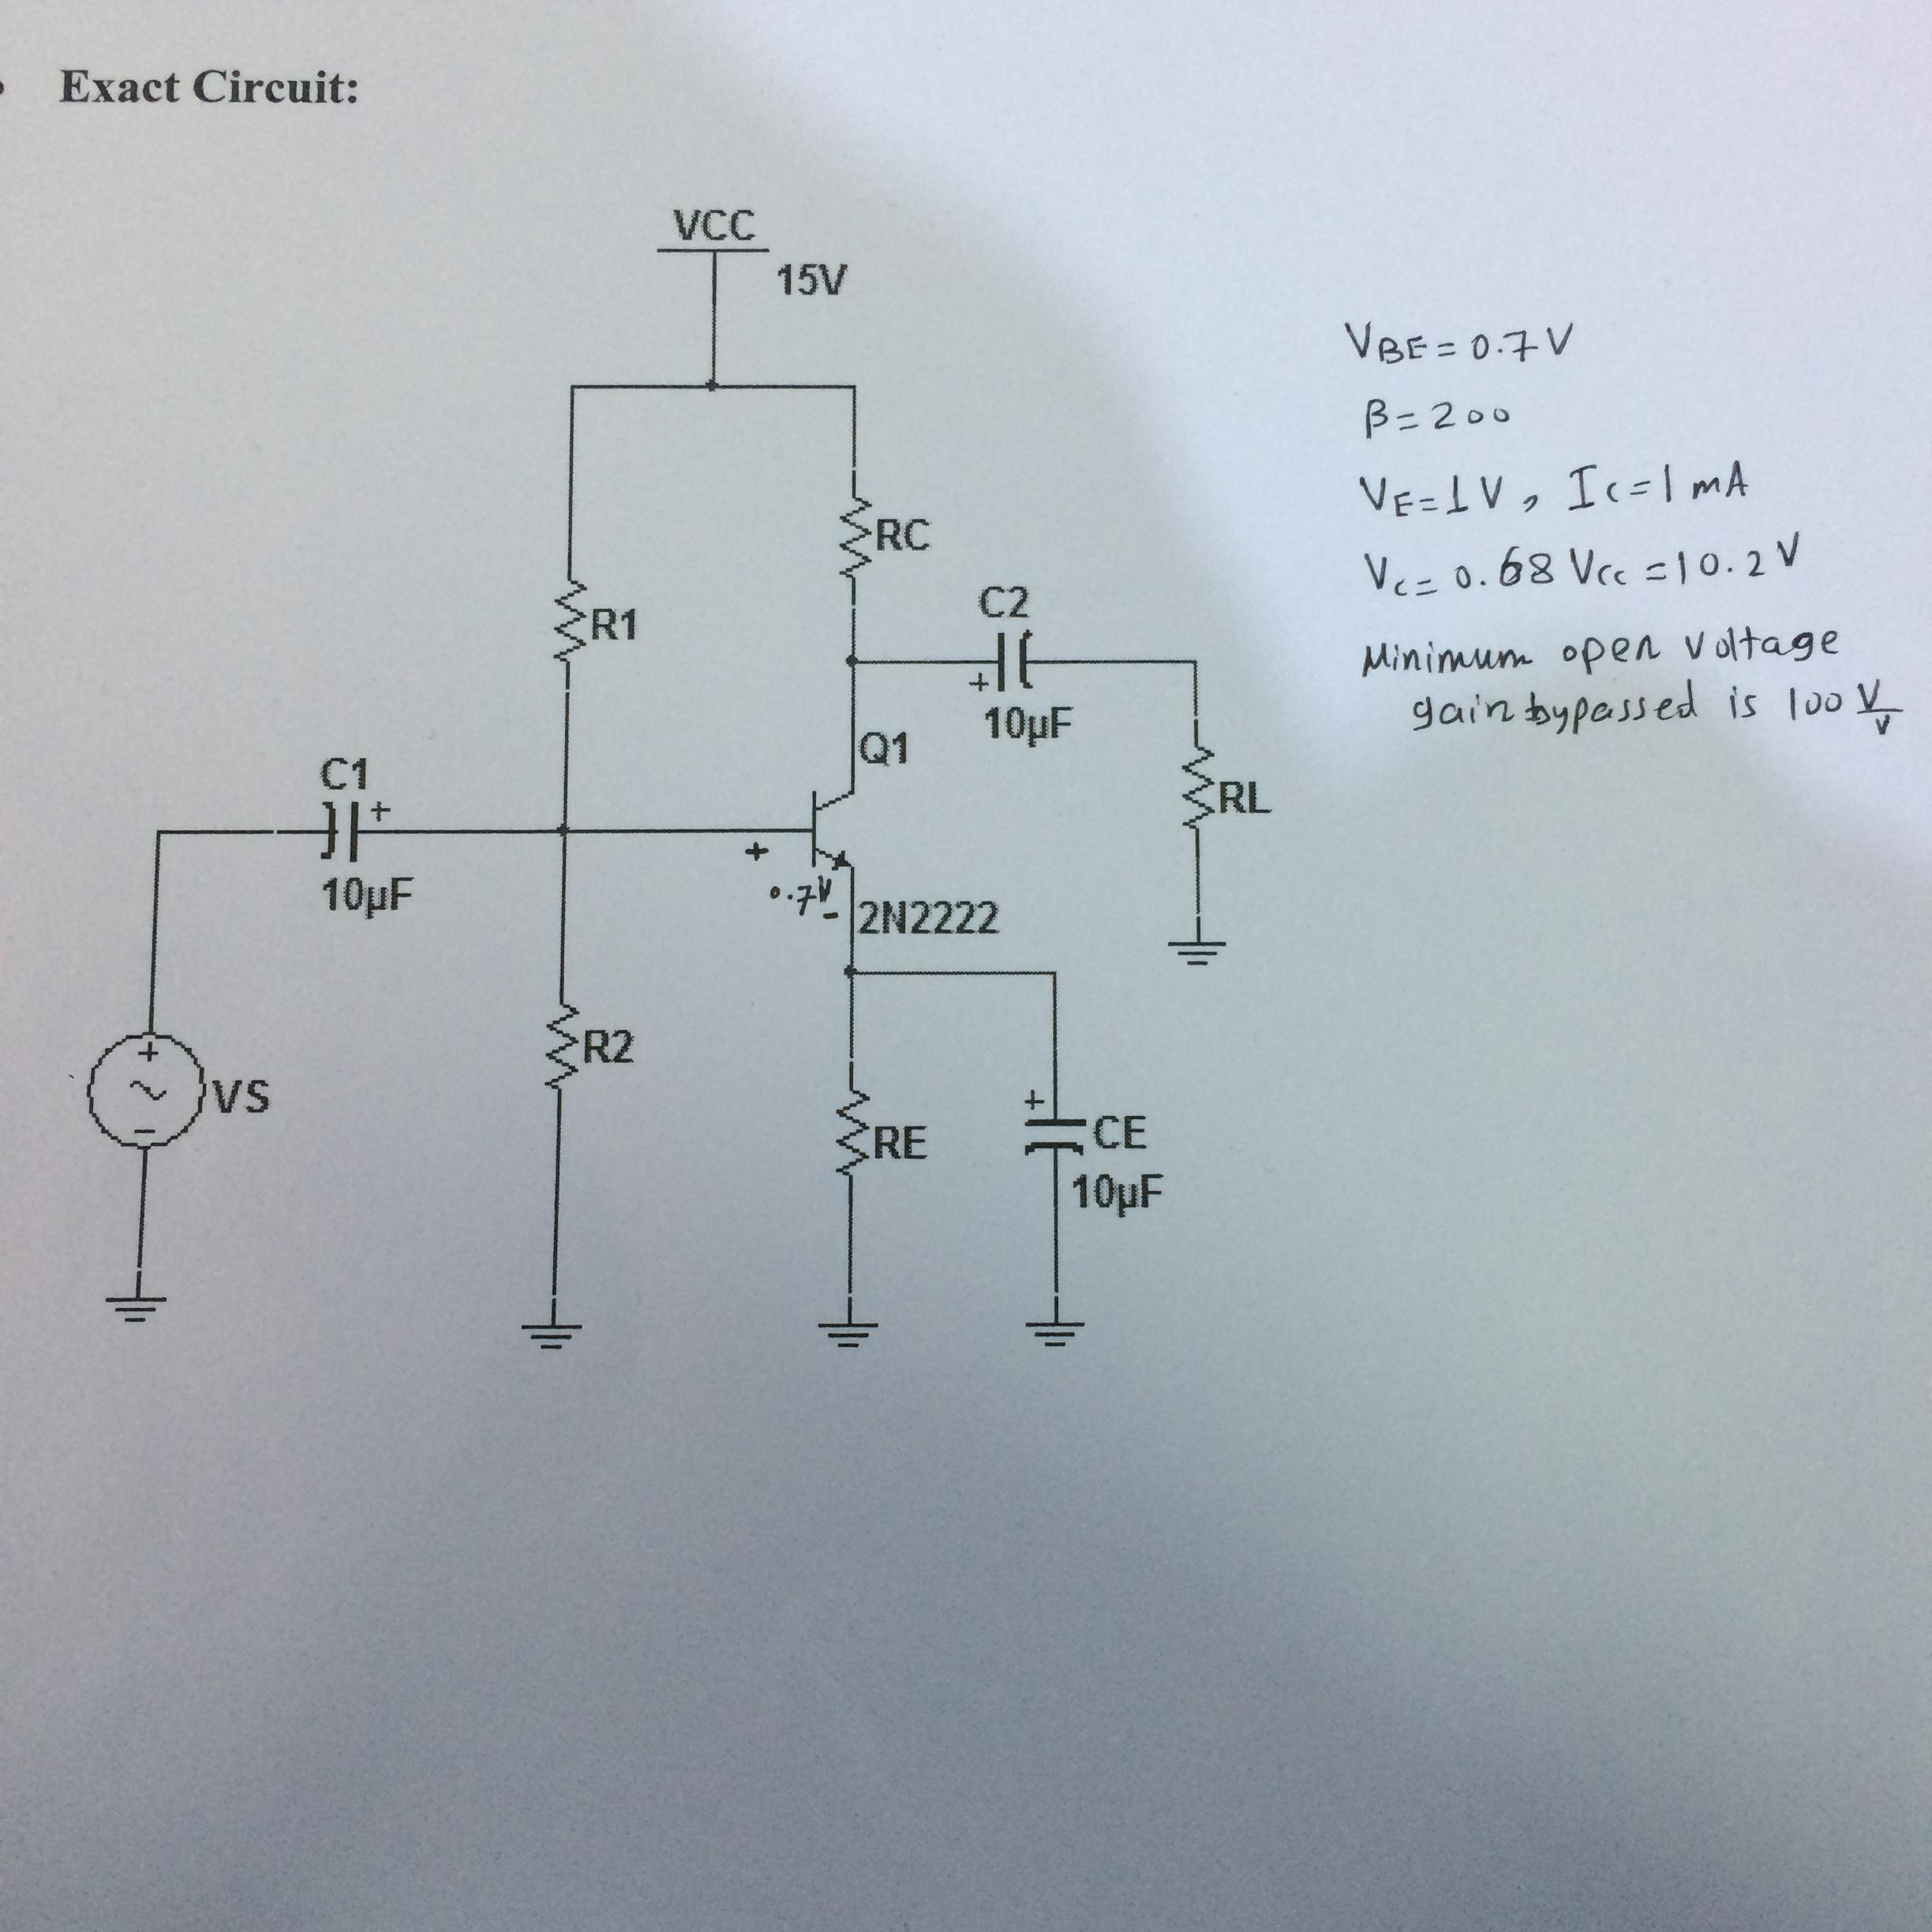 Transistors Common Emitter Audio Amplifier Auto Electrical Wiring Microphone Preamplifier With Bjt And Op Amp Youspice Designing A